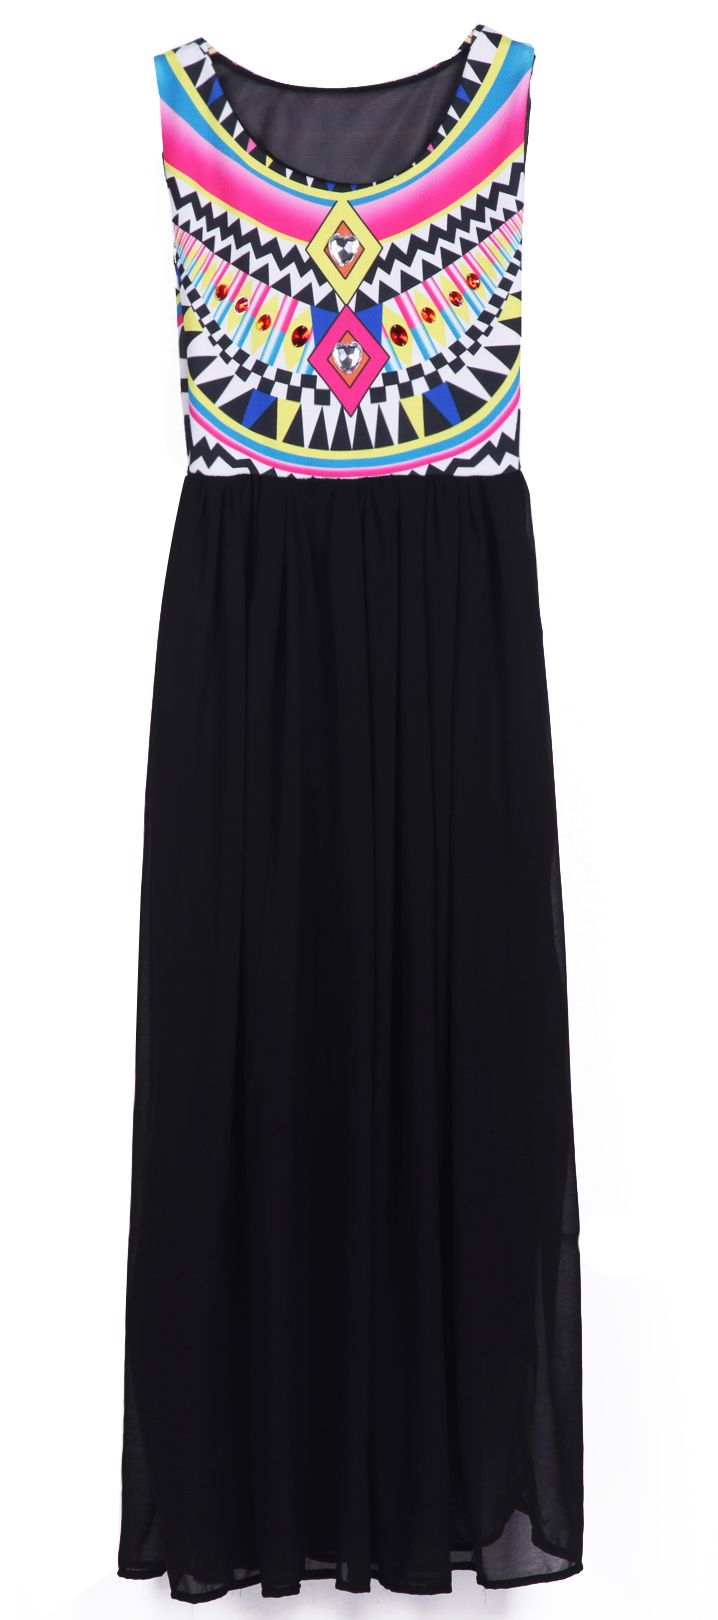 Black Sleeveless Geometric Tribal Print Chiffon Dress - only $22